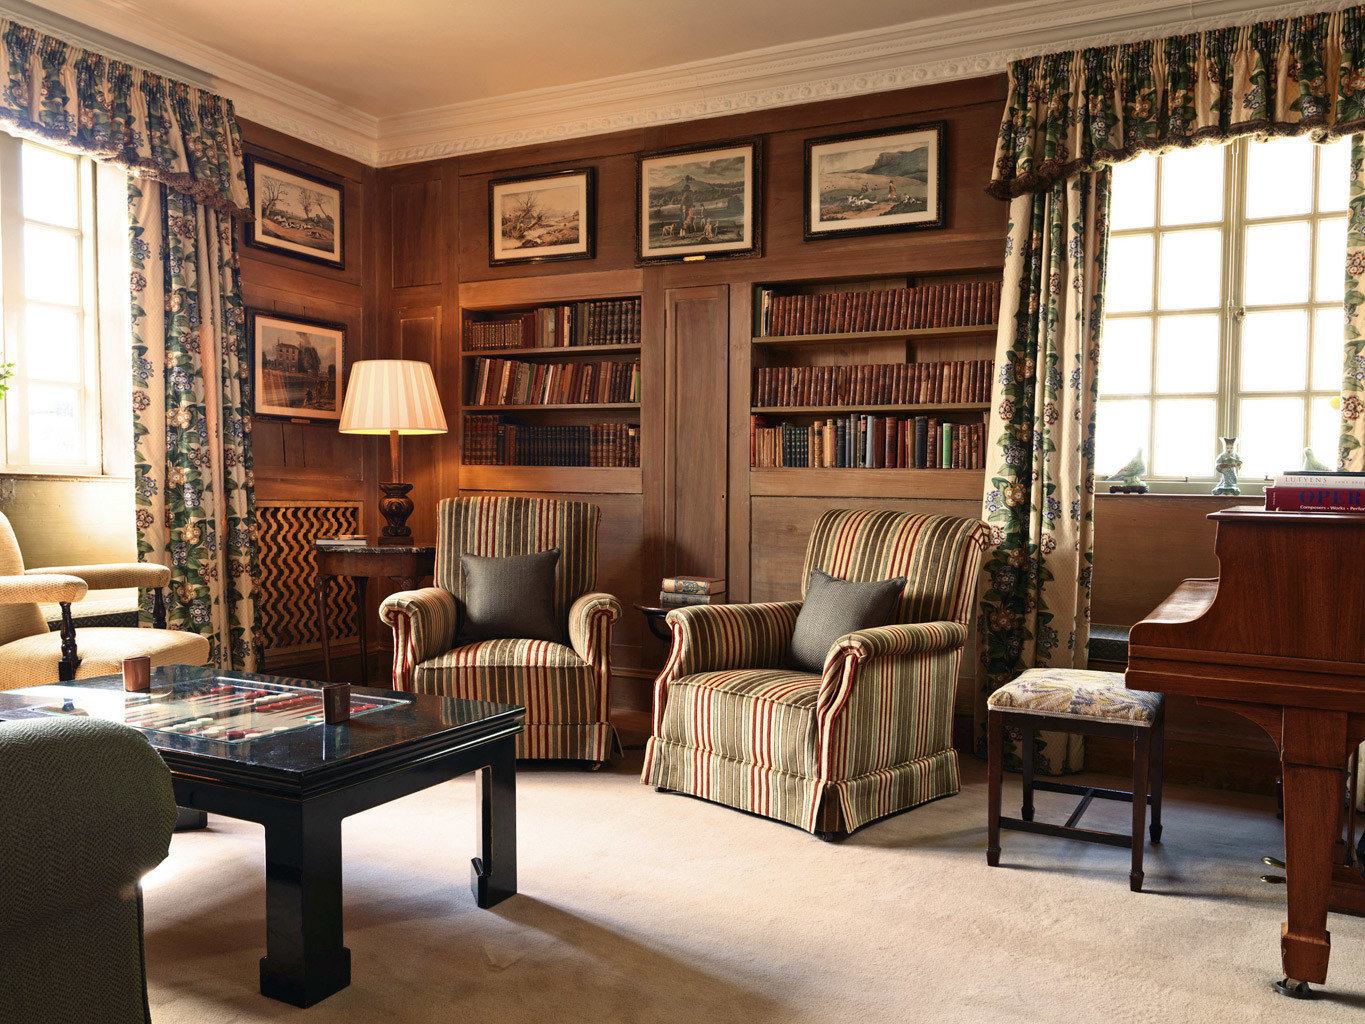 Country Golf Historic Lobby Lounge living room chair property home hardwood cabinetry recreation room library